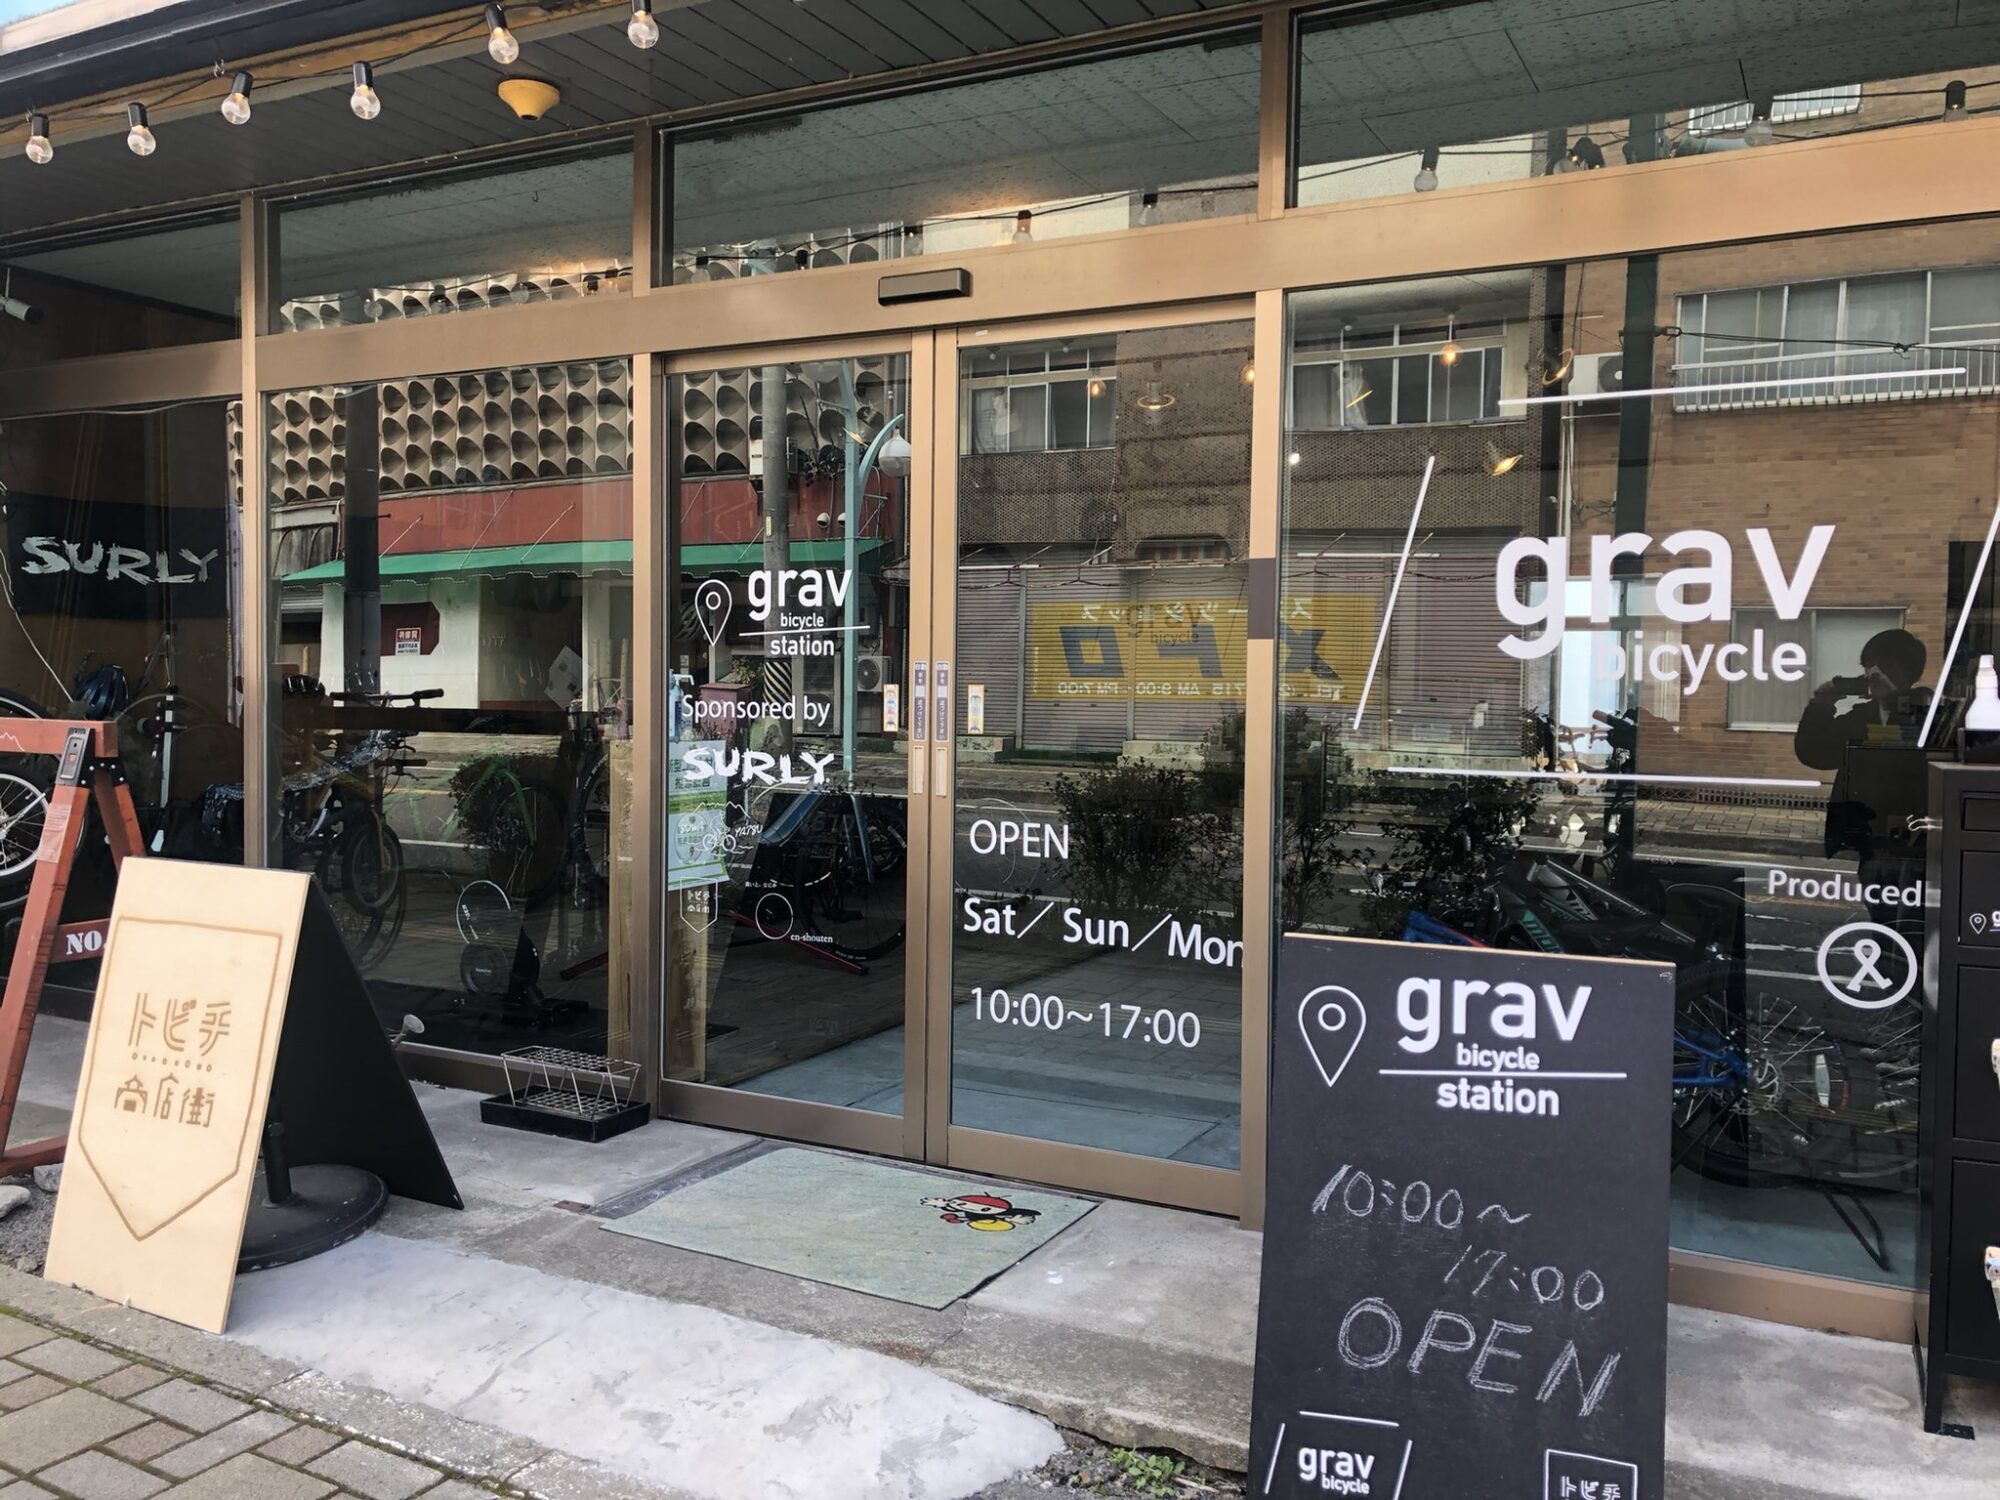 grav bicycle station